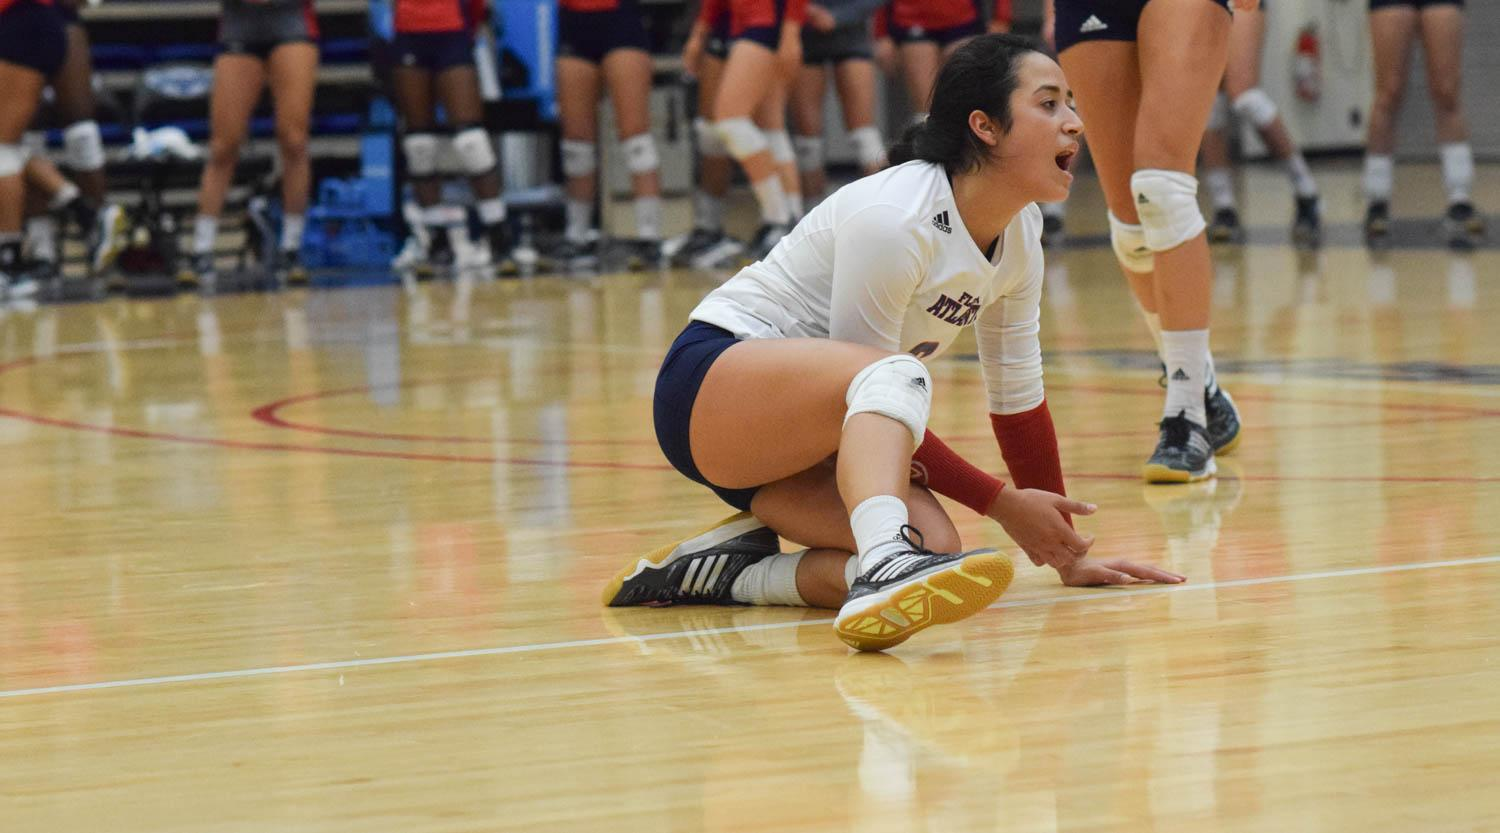 Nathalie Rosado gets back up after attempting to save a volley during the second set of the Owls match versus GSU on Saturday night. Ryan Lynch | Sports Editor